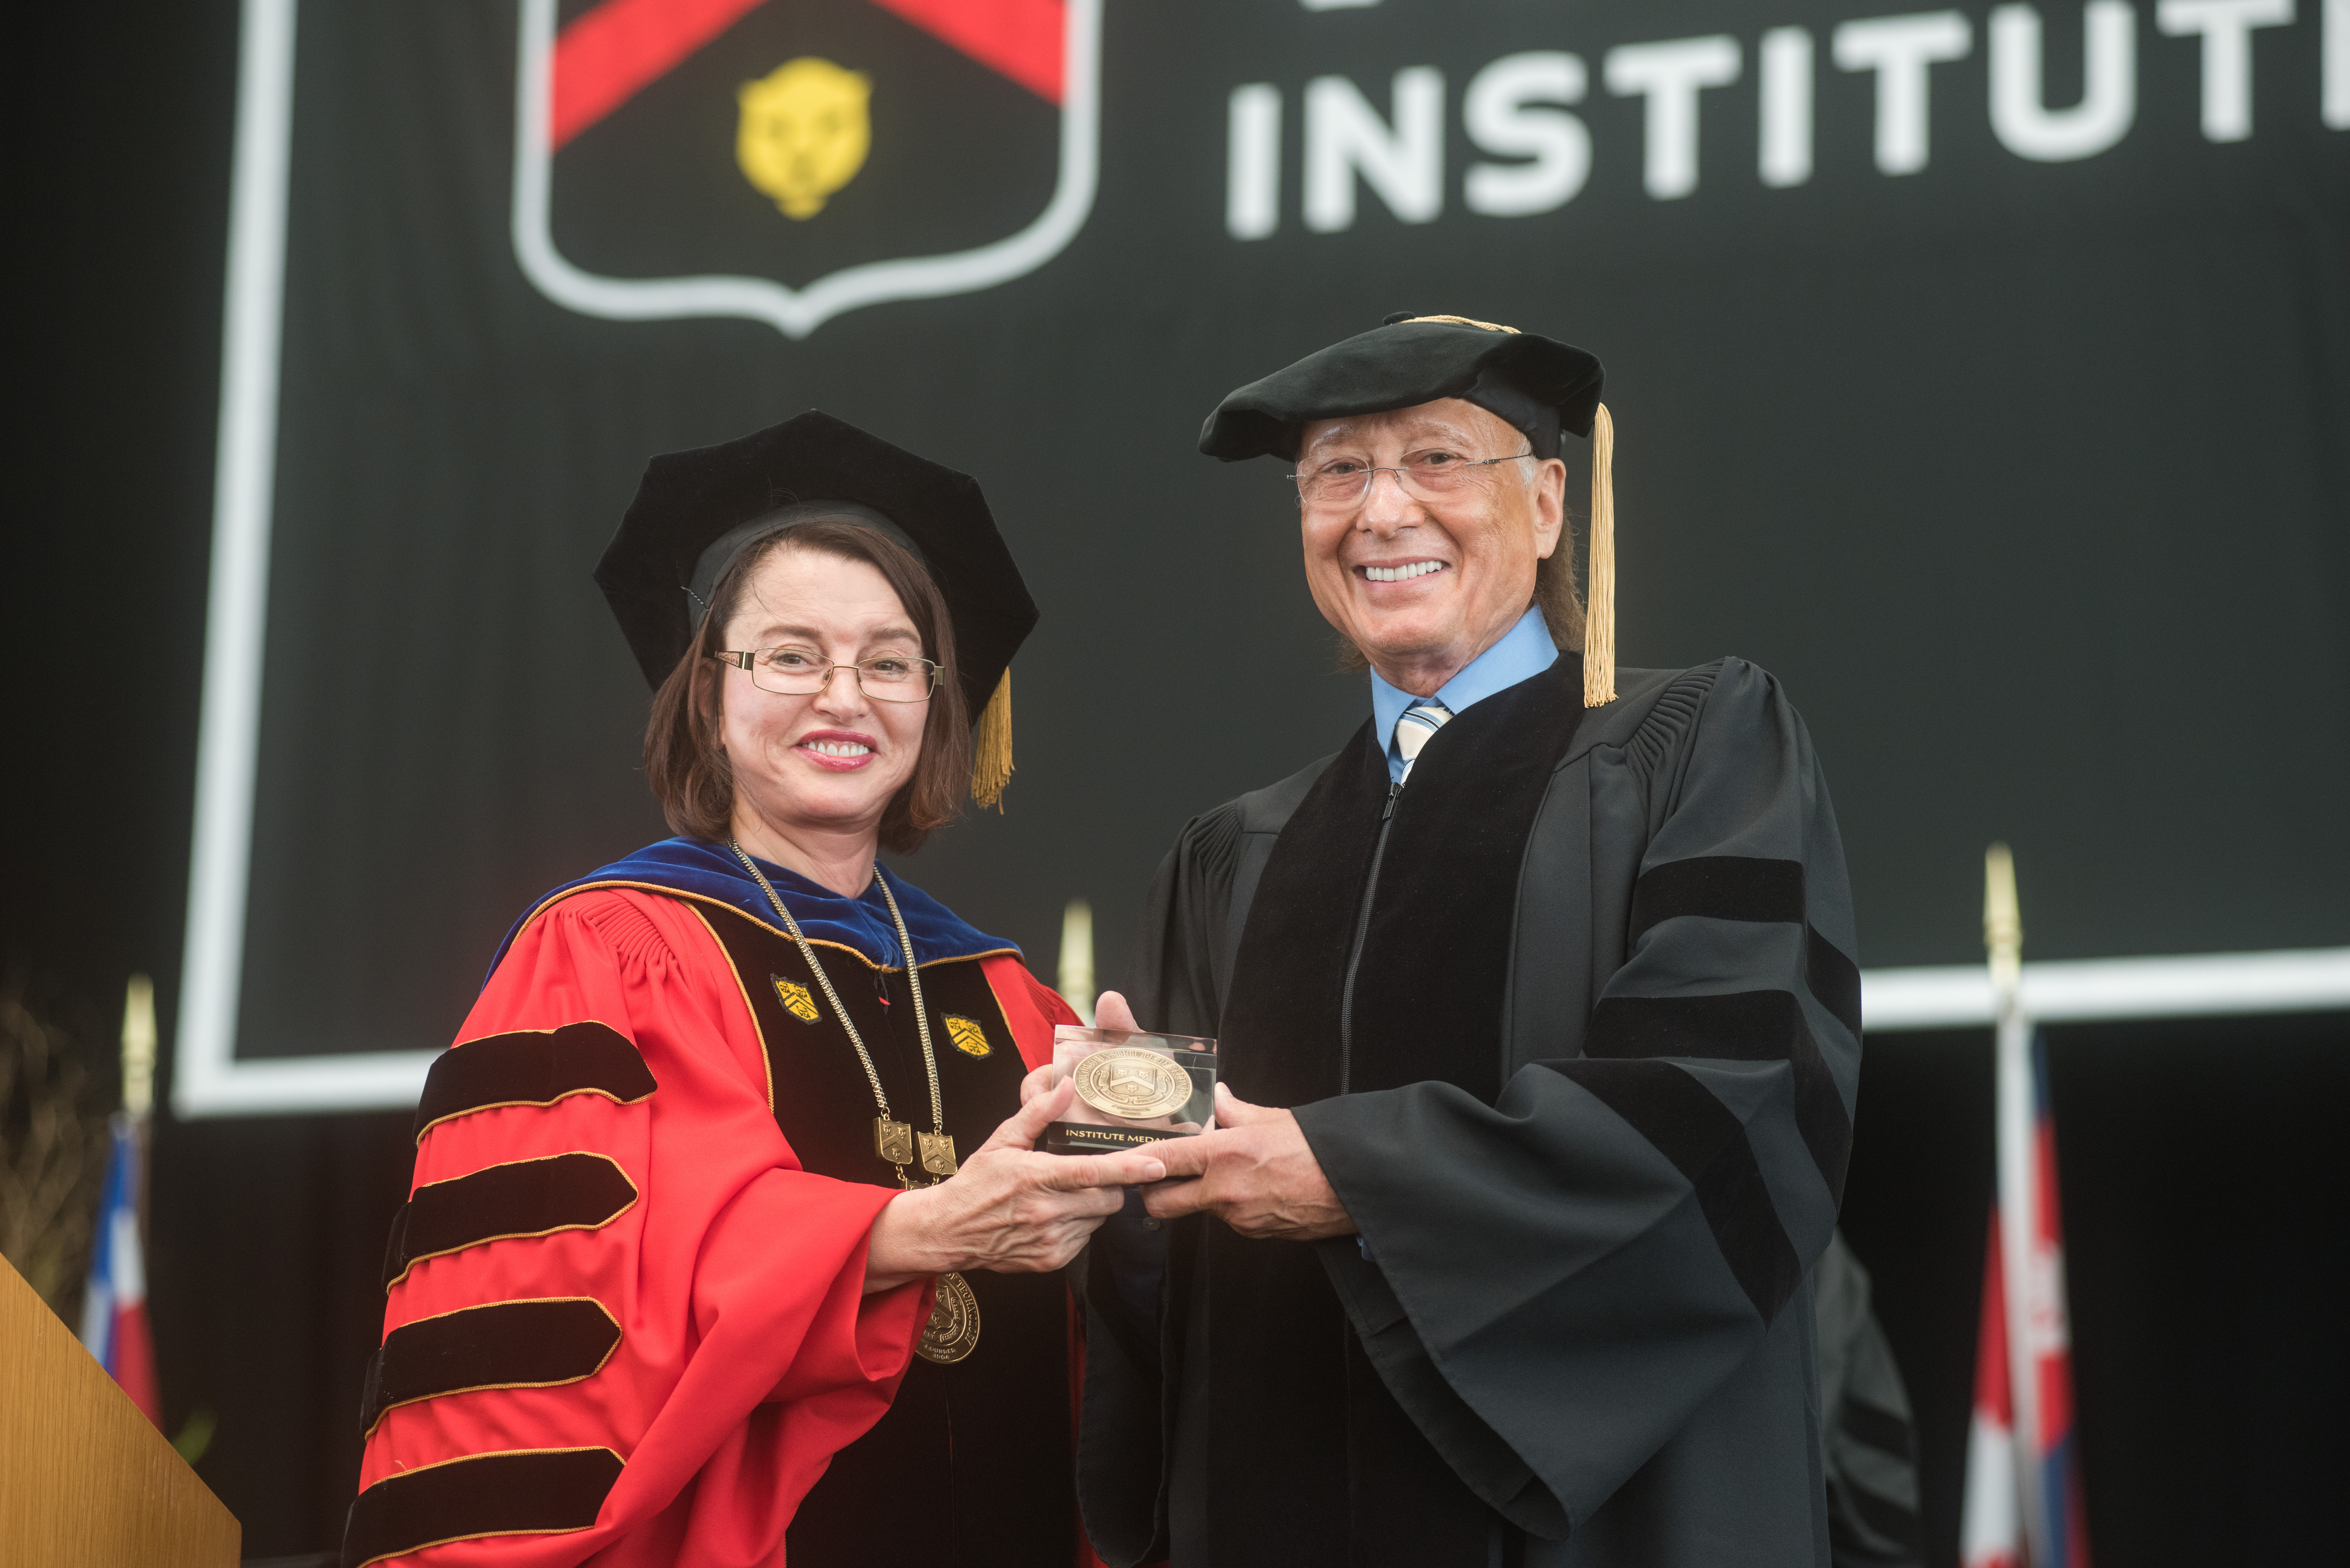 President Zorica Pantic´ with Commencement speaker Art Zafiropoulo, EE '60.